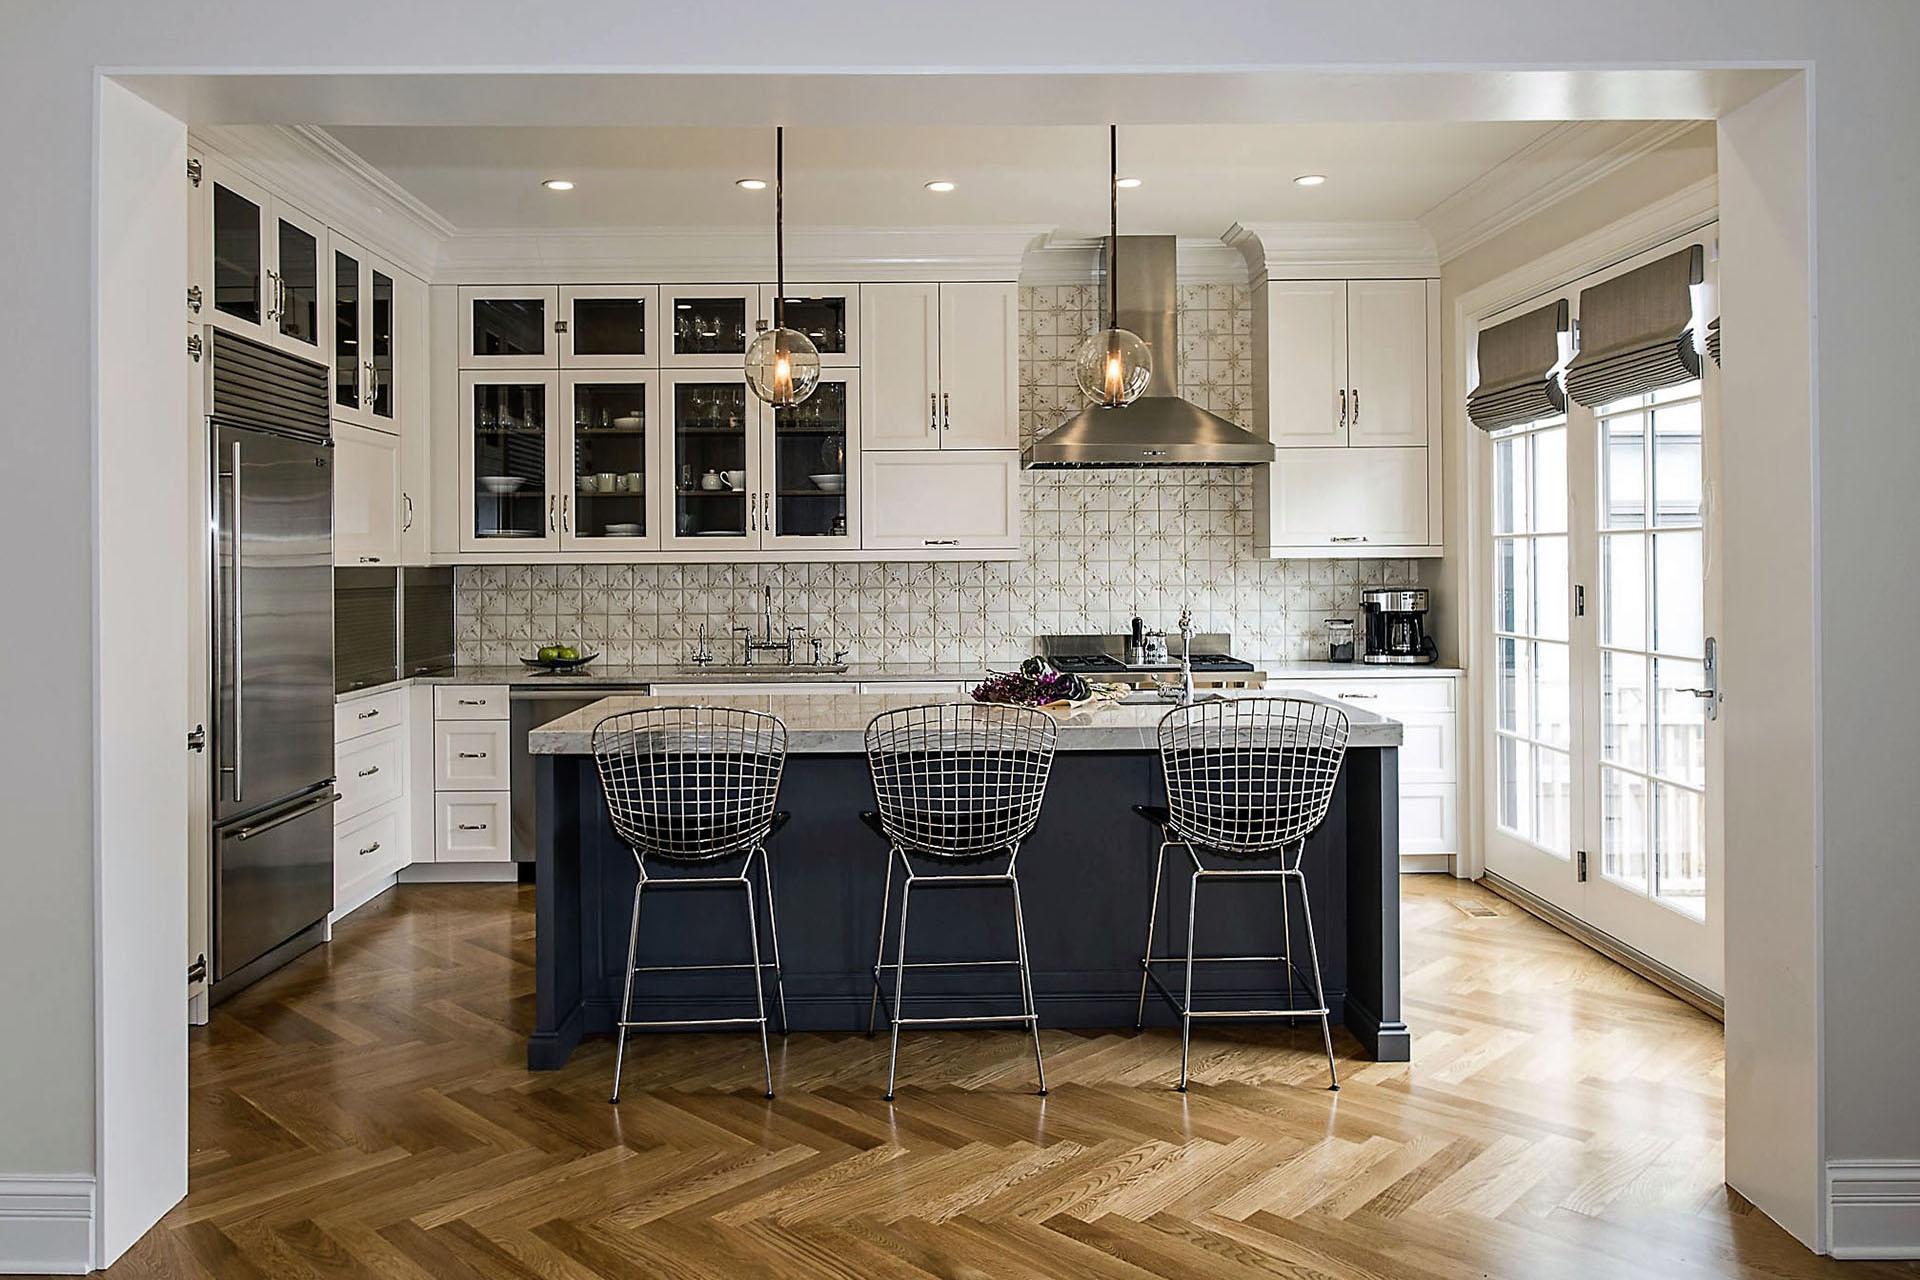 Spacious Classically White Kitchen Design With Island And Three Stylish Bar  Chairs In Chicago